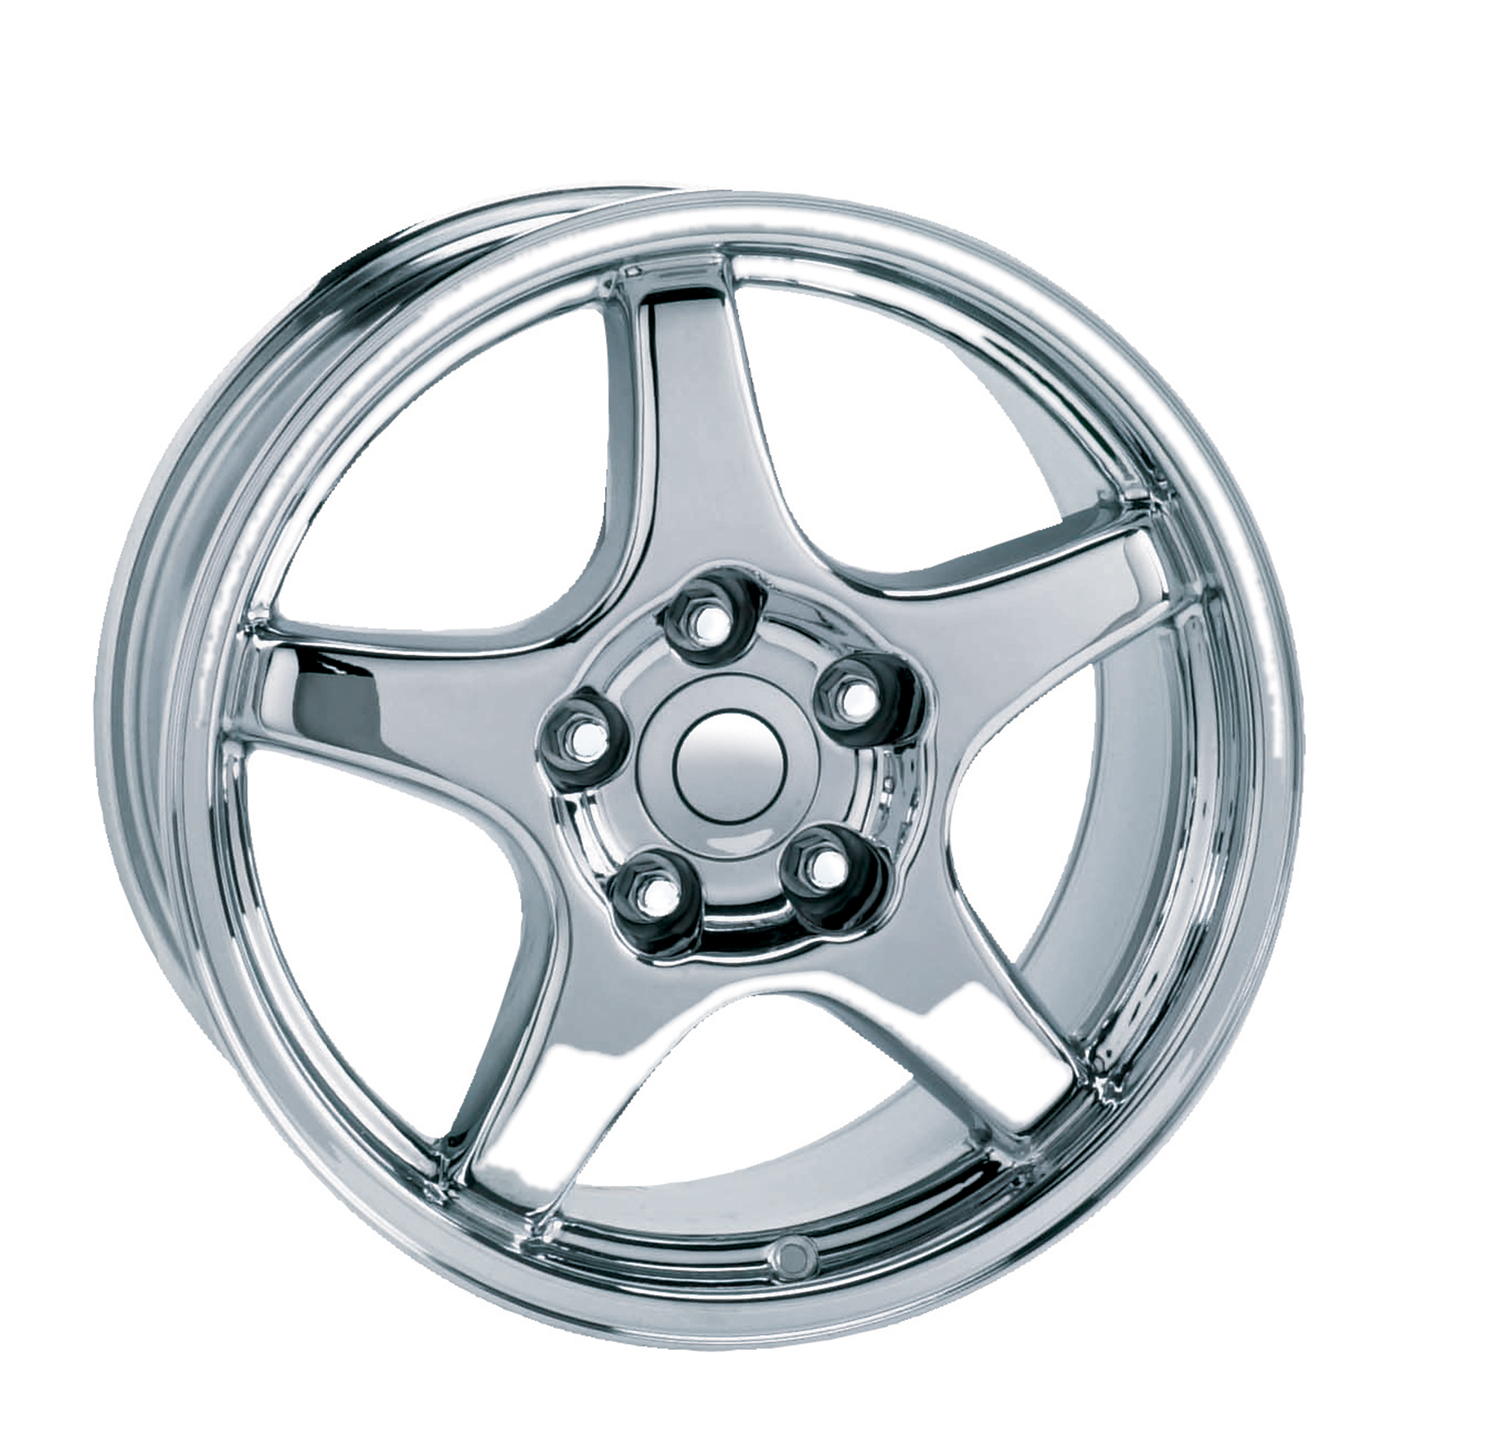 Chevrolet Corvette 1984-1996 17x11 5x47.5 +36 C4 Zr1 Style Wheel -  Chrome With Cap